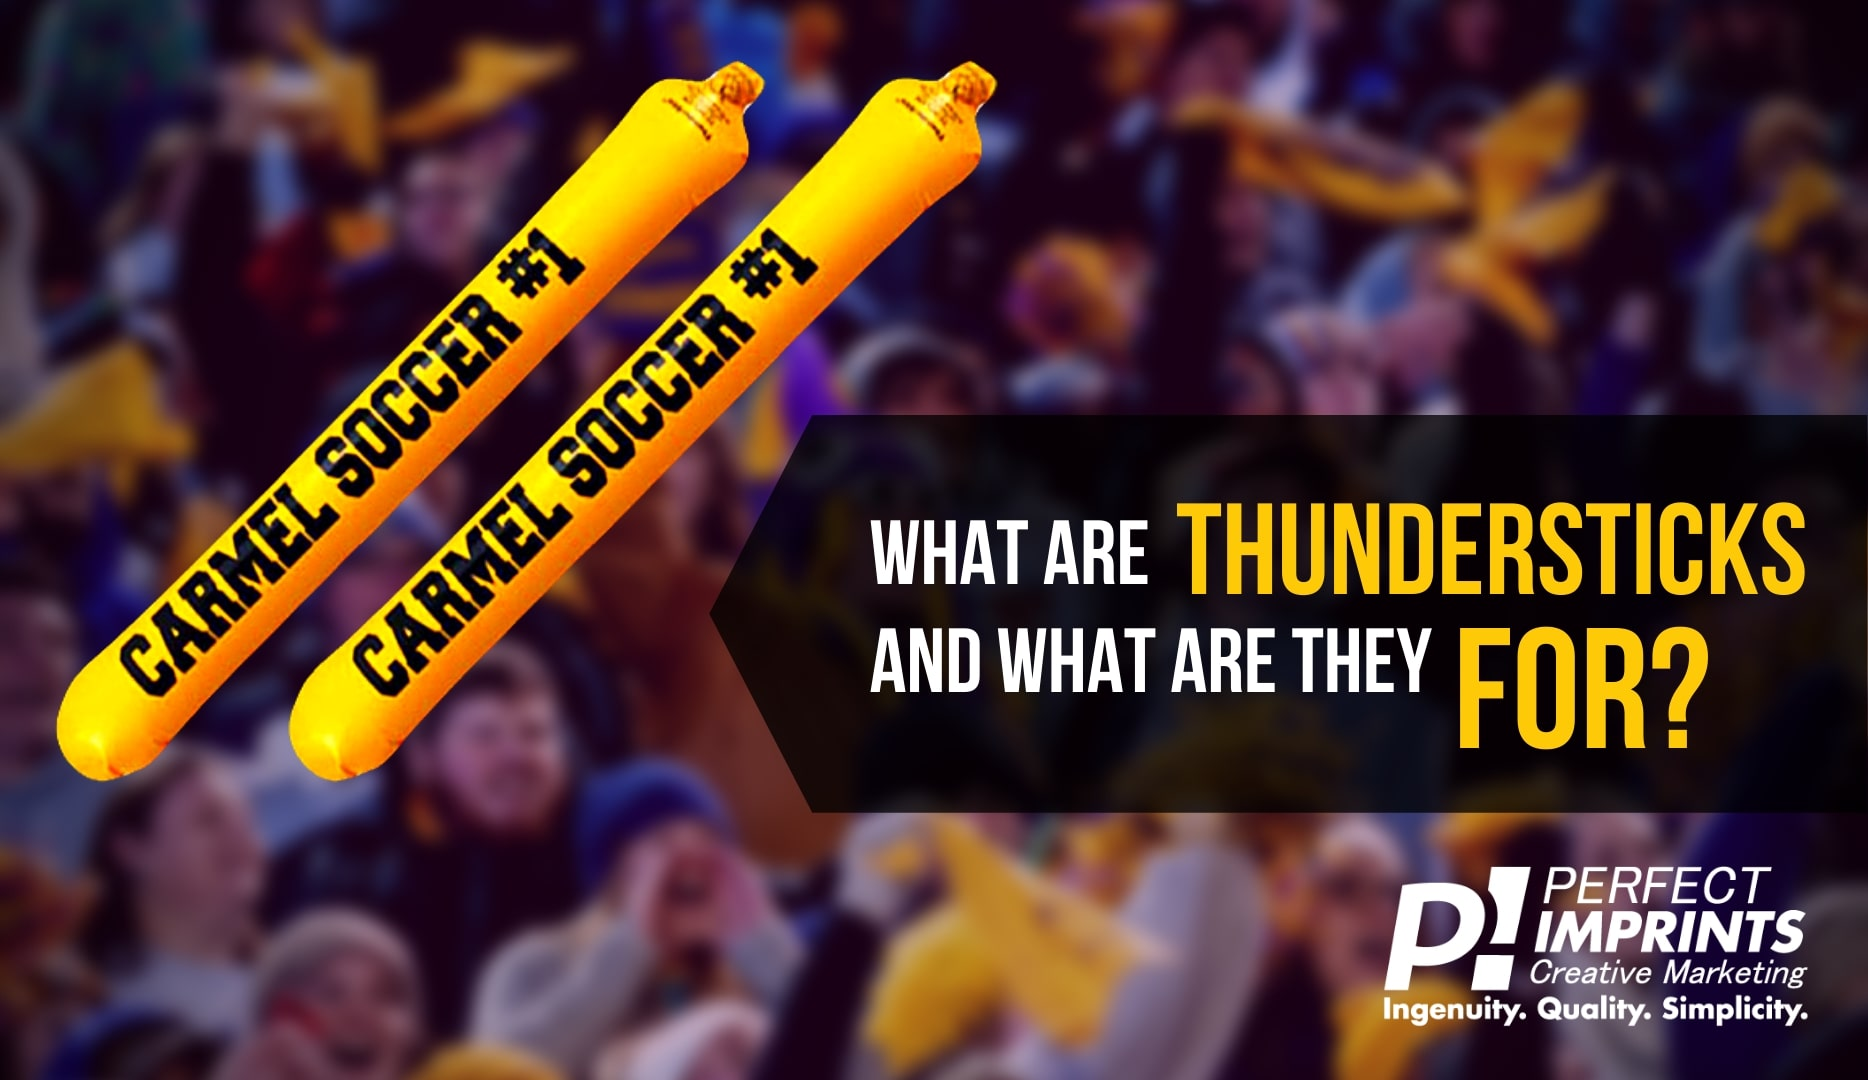 What Are Thunder Sticks And What Are They For?